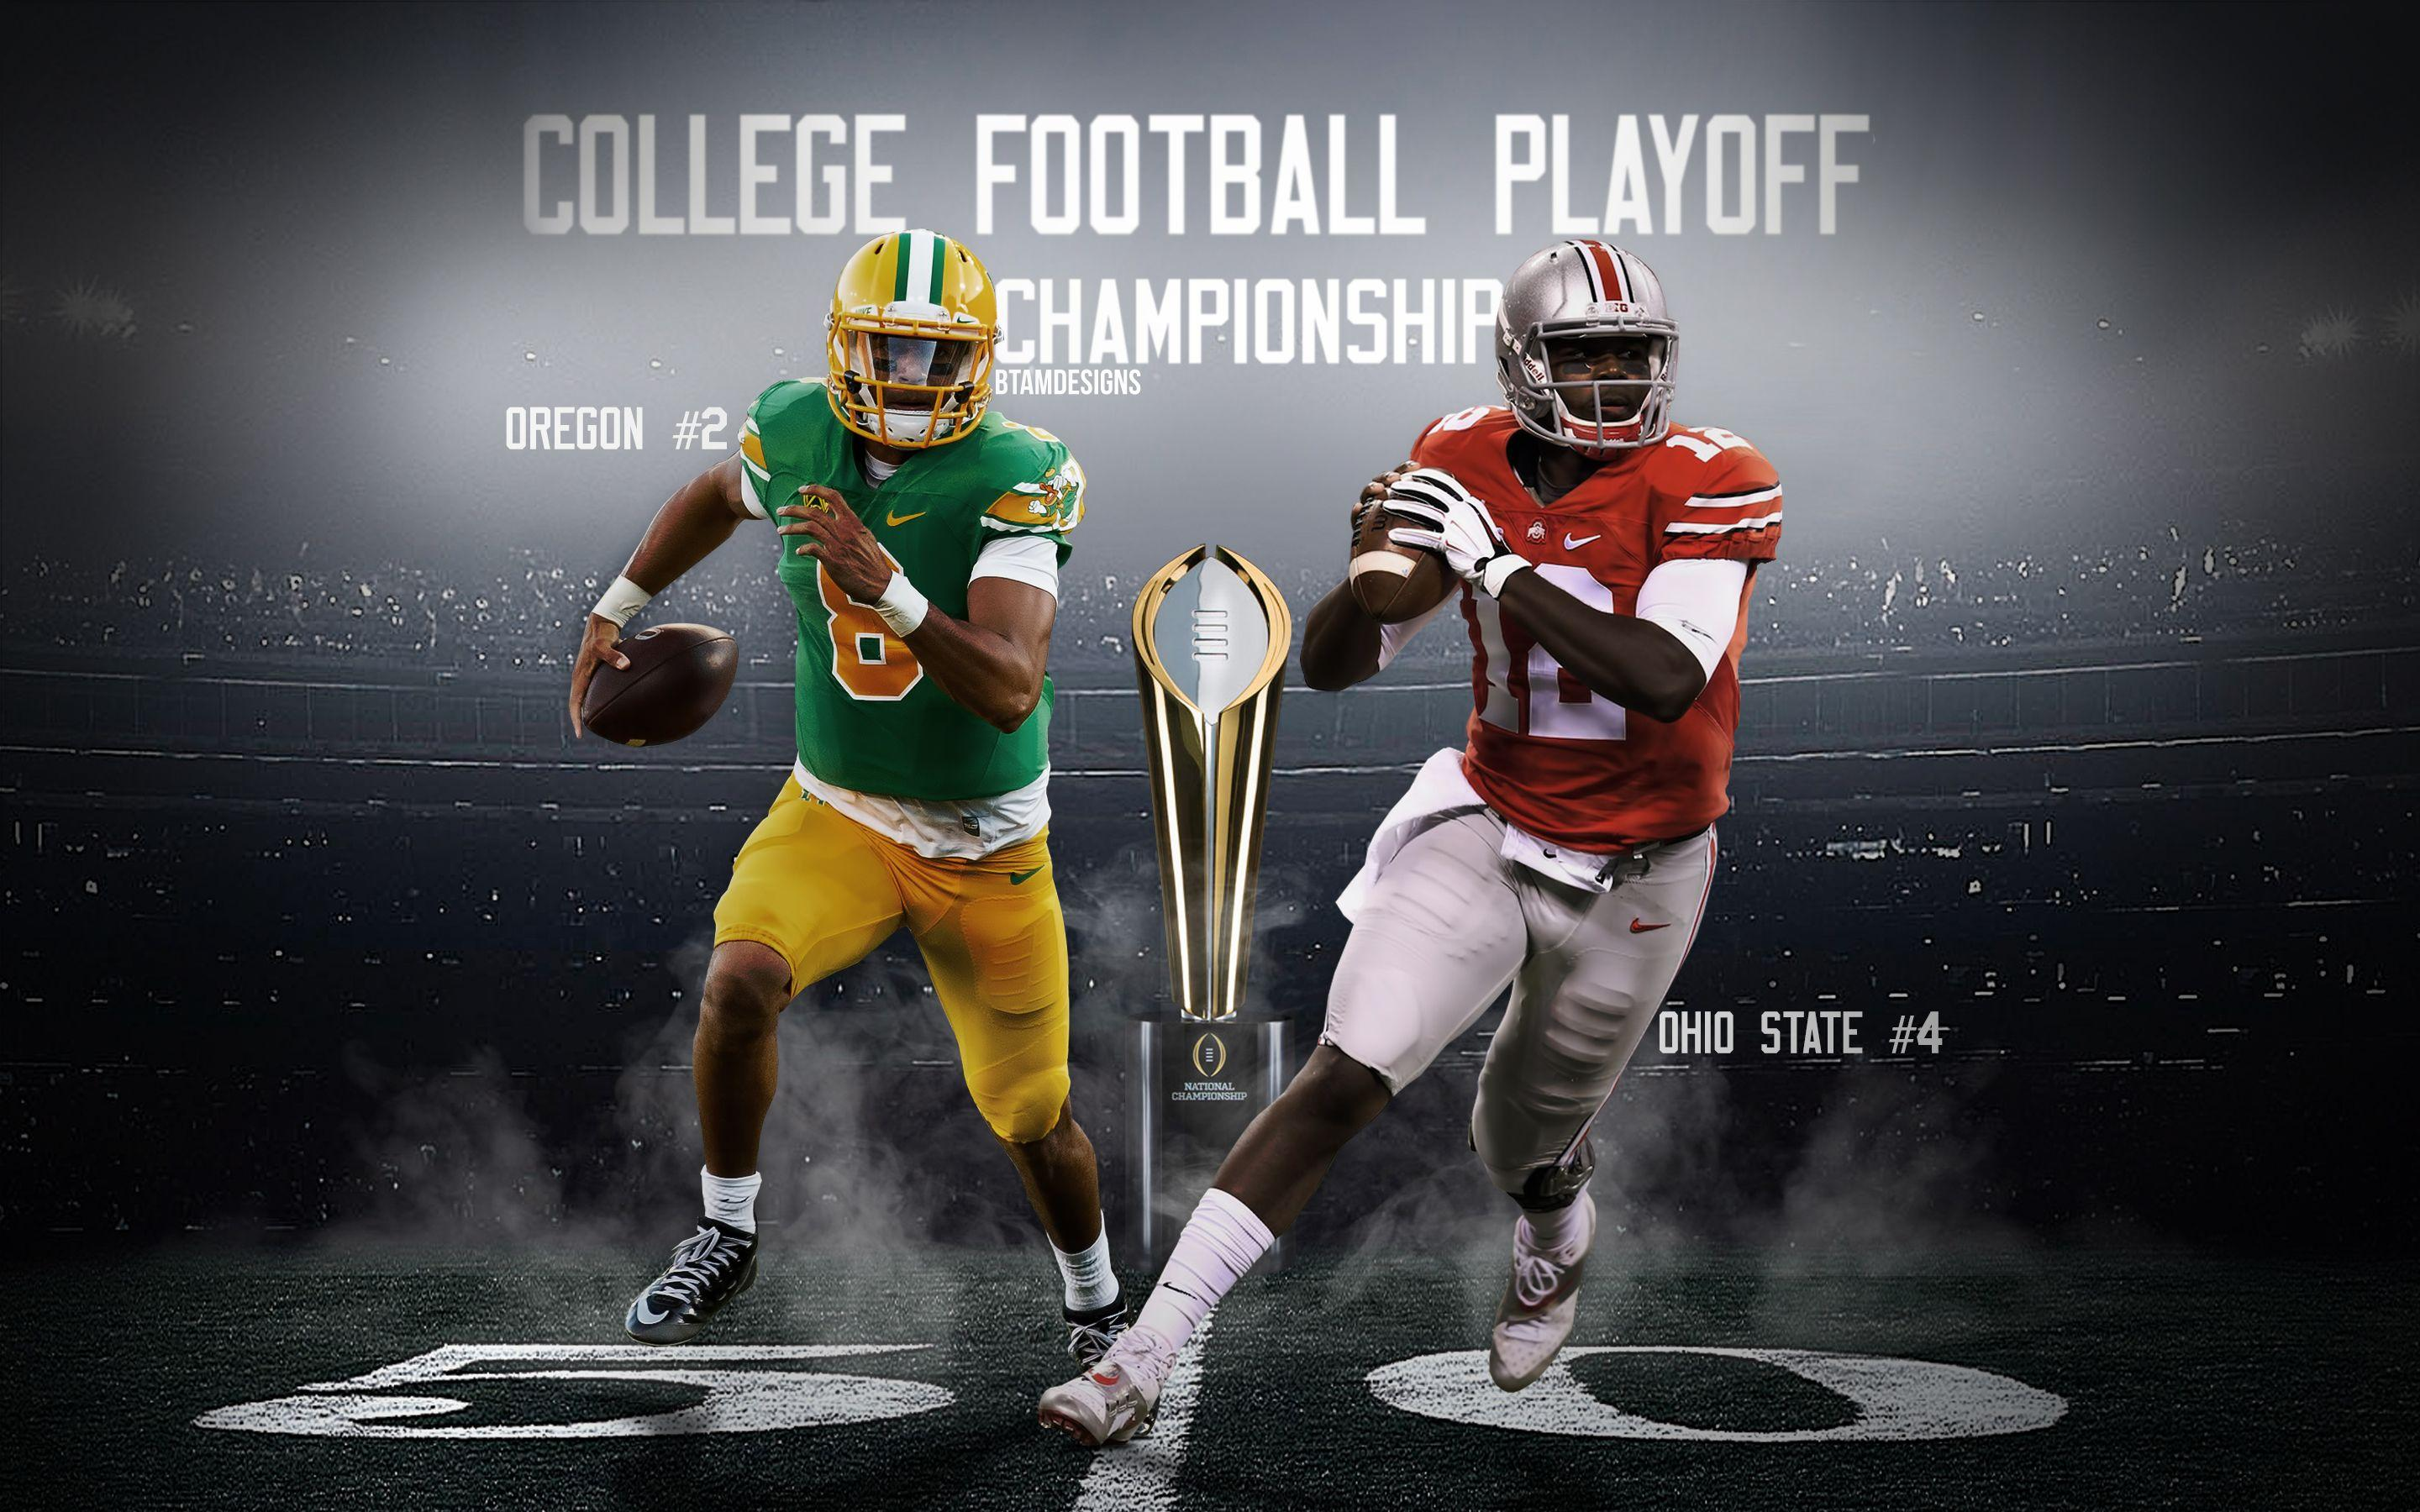 College Football Wallpapers: ESPN College Football Wallpapers